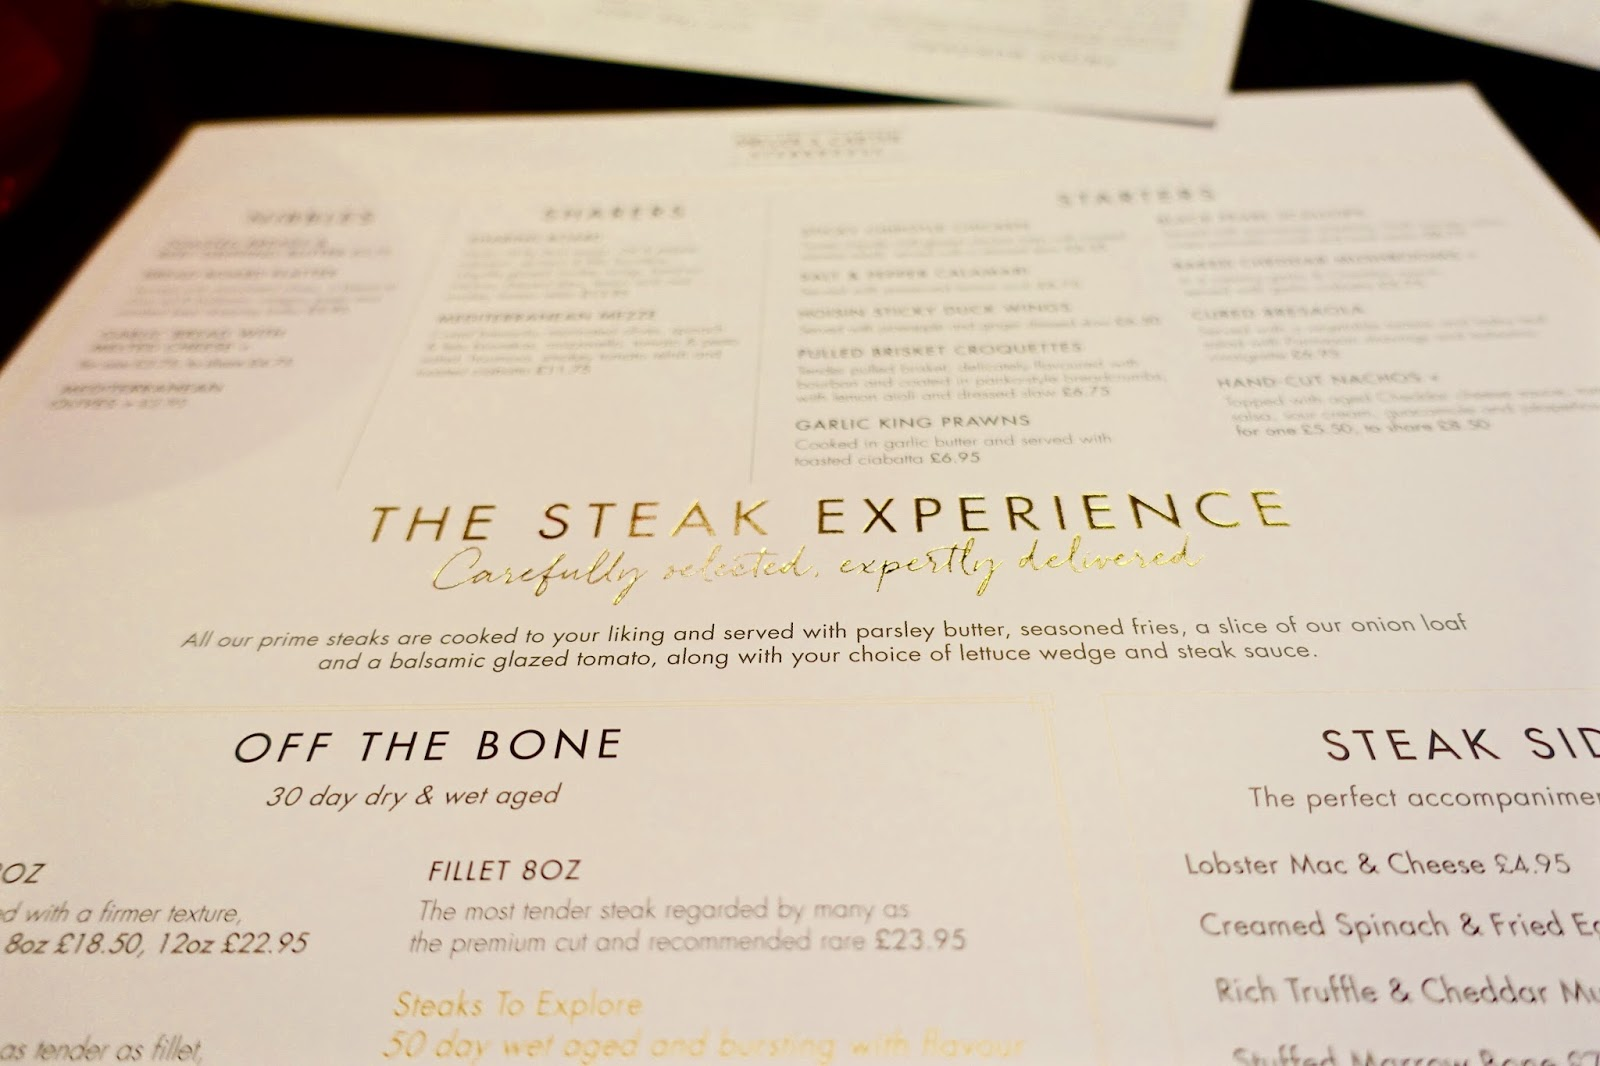 The steak experience at Miller and Carter